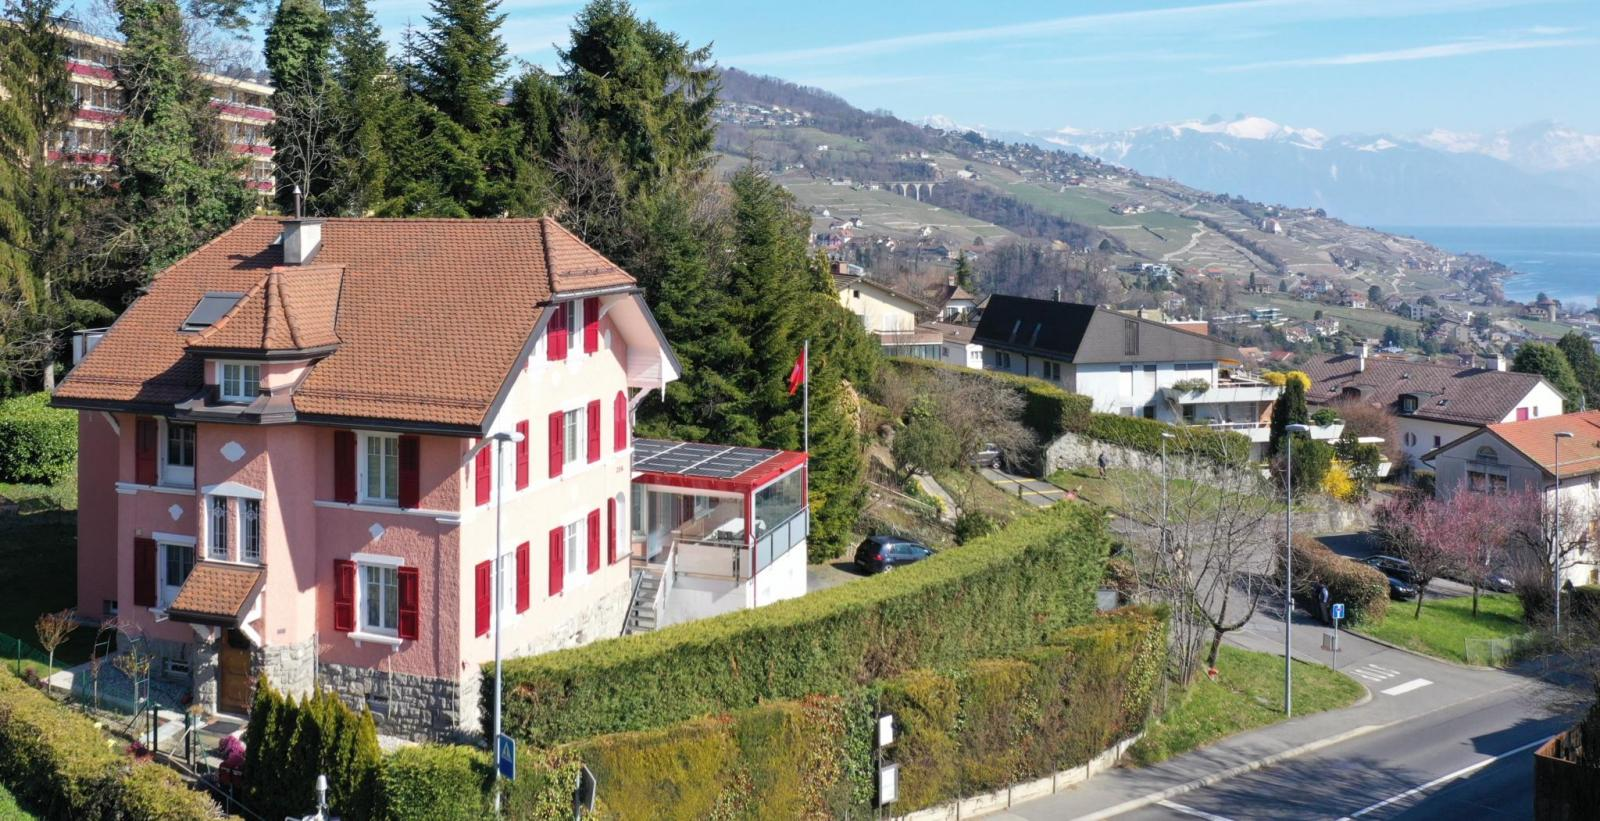 La Conversion - Close to the center, 350 m² property with stunning views